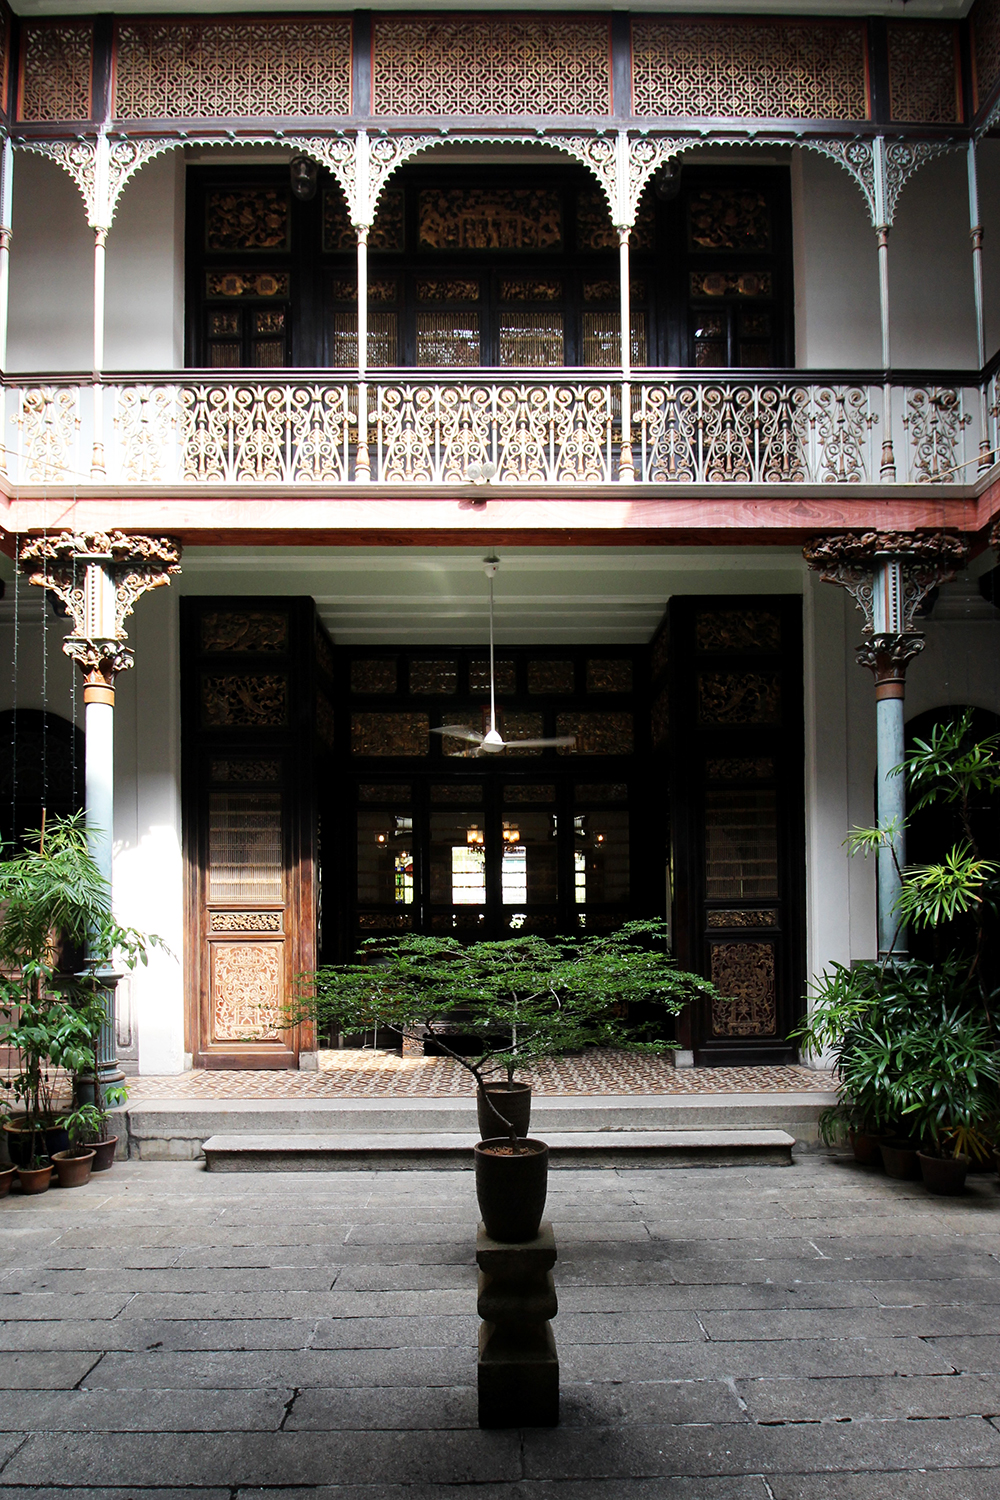 The entirety of the Cheong Fatt Tze Mansion displays visual odes to Penang's peranakan culture.